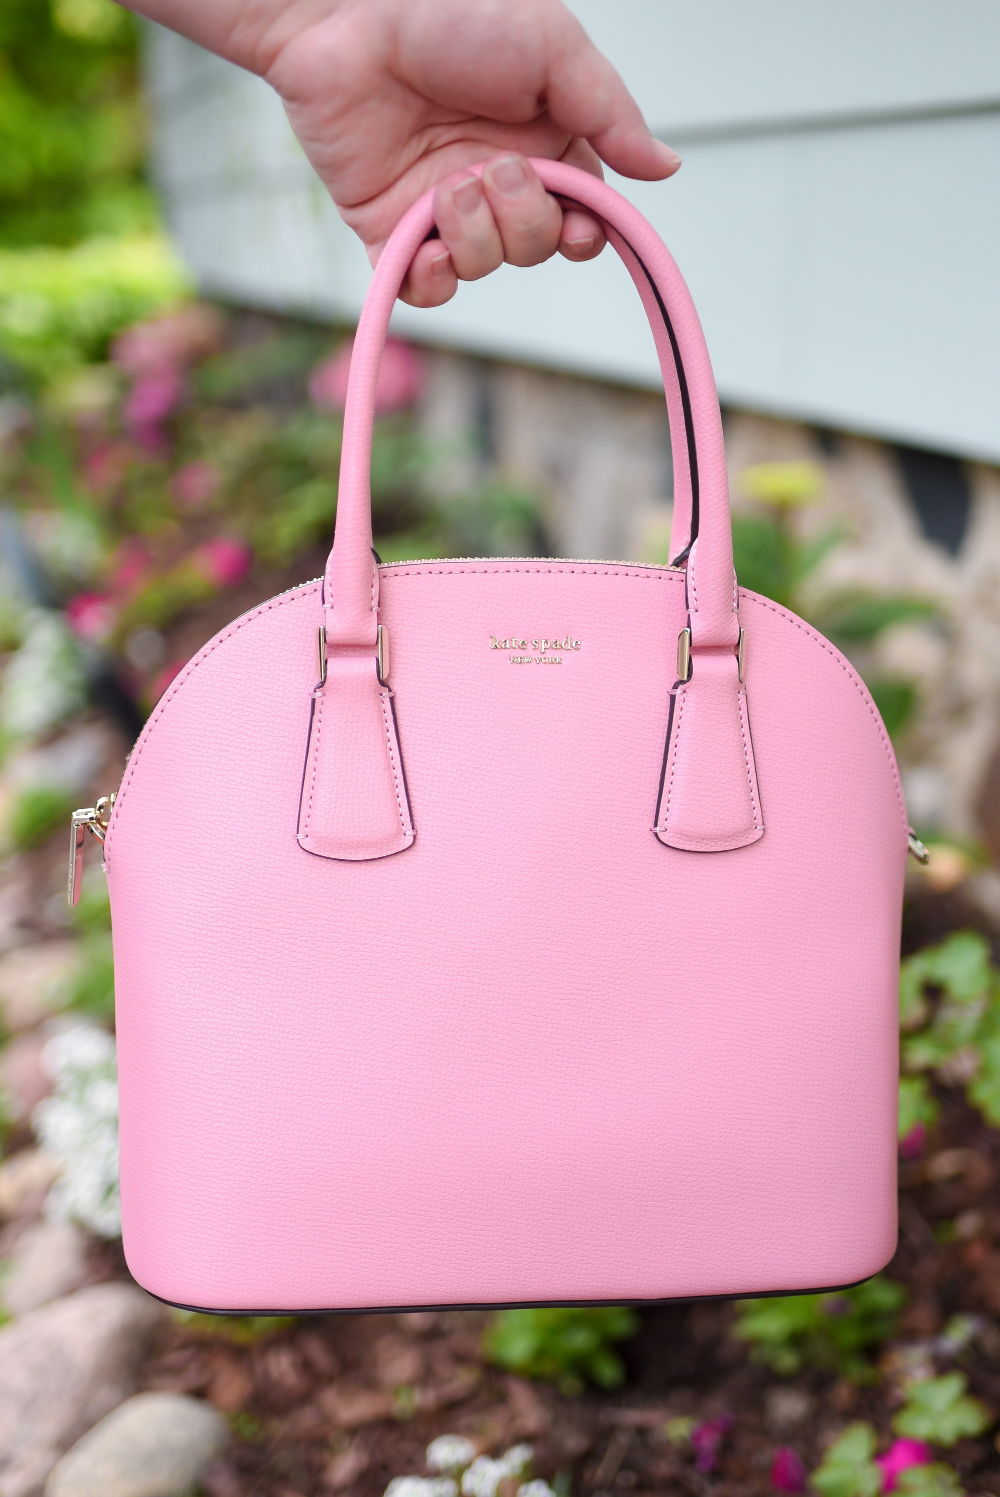 Kate Spade Sylvia Large Dome Satchel Review An Honest And